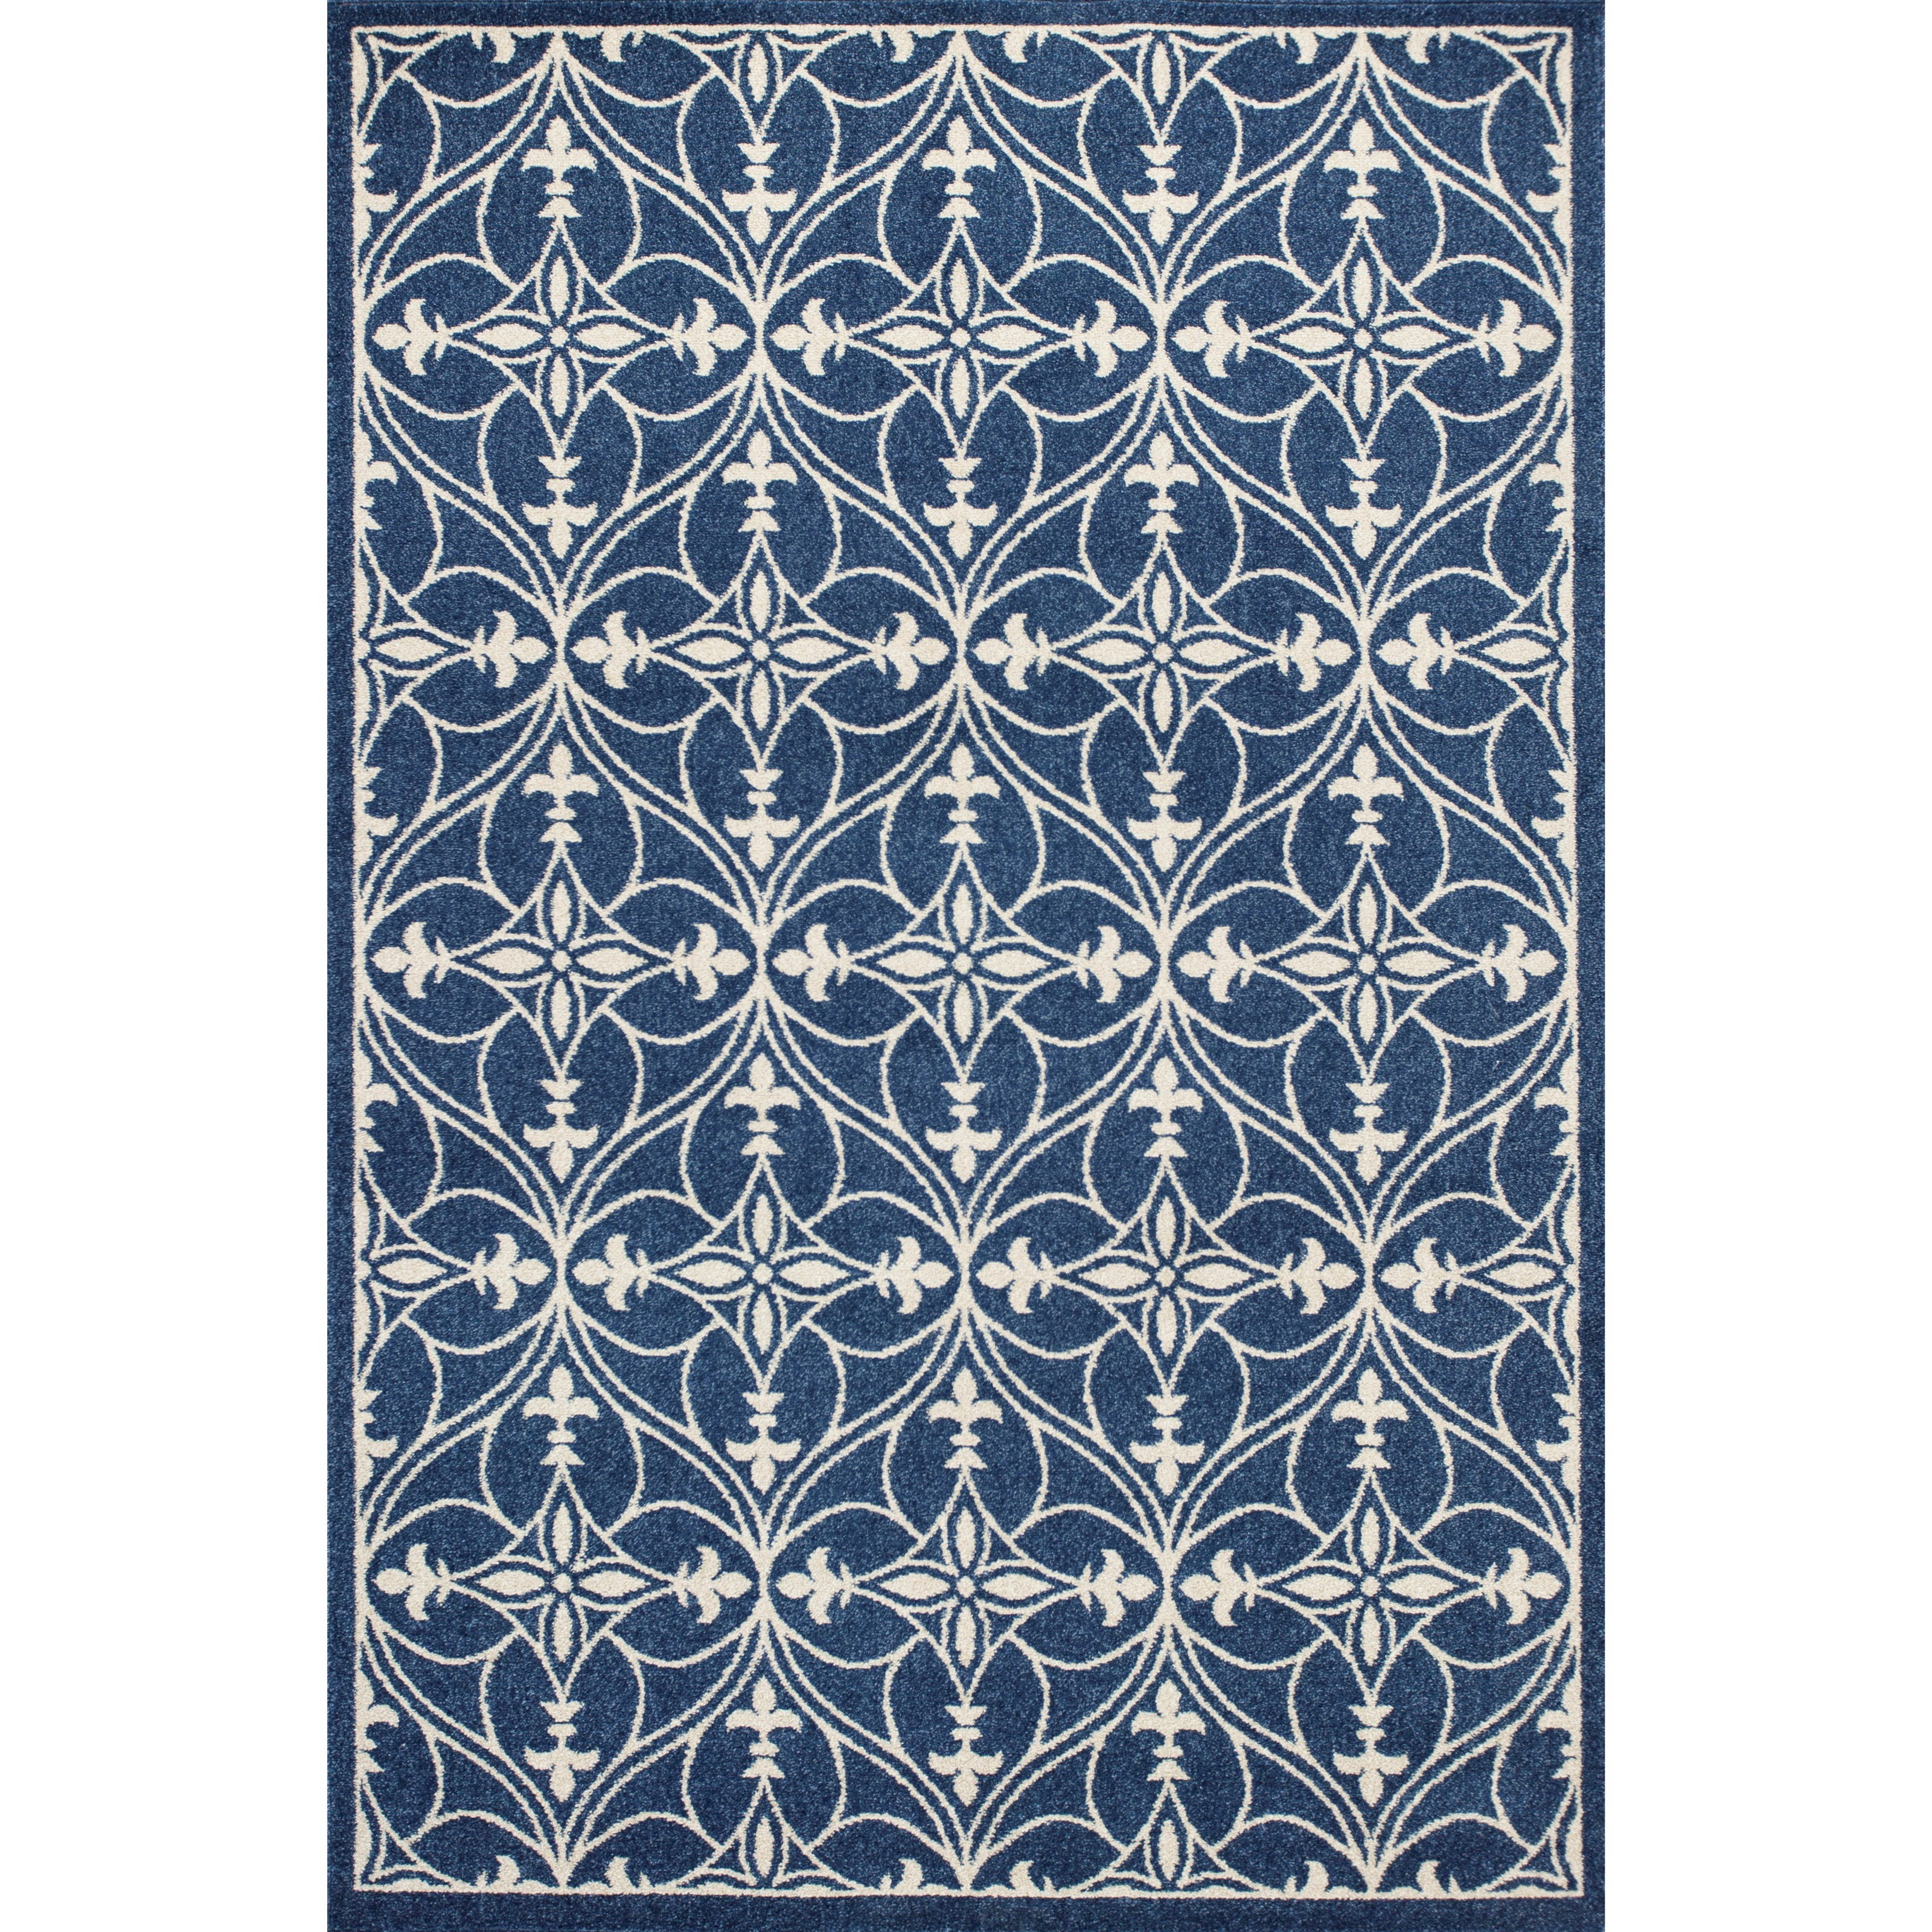 """Lucia 7'7"""" X 10'10"""" Denim Bentley Area Rug by Kas at Wilson's Furniture"""